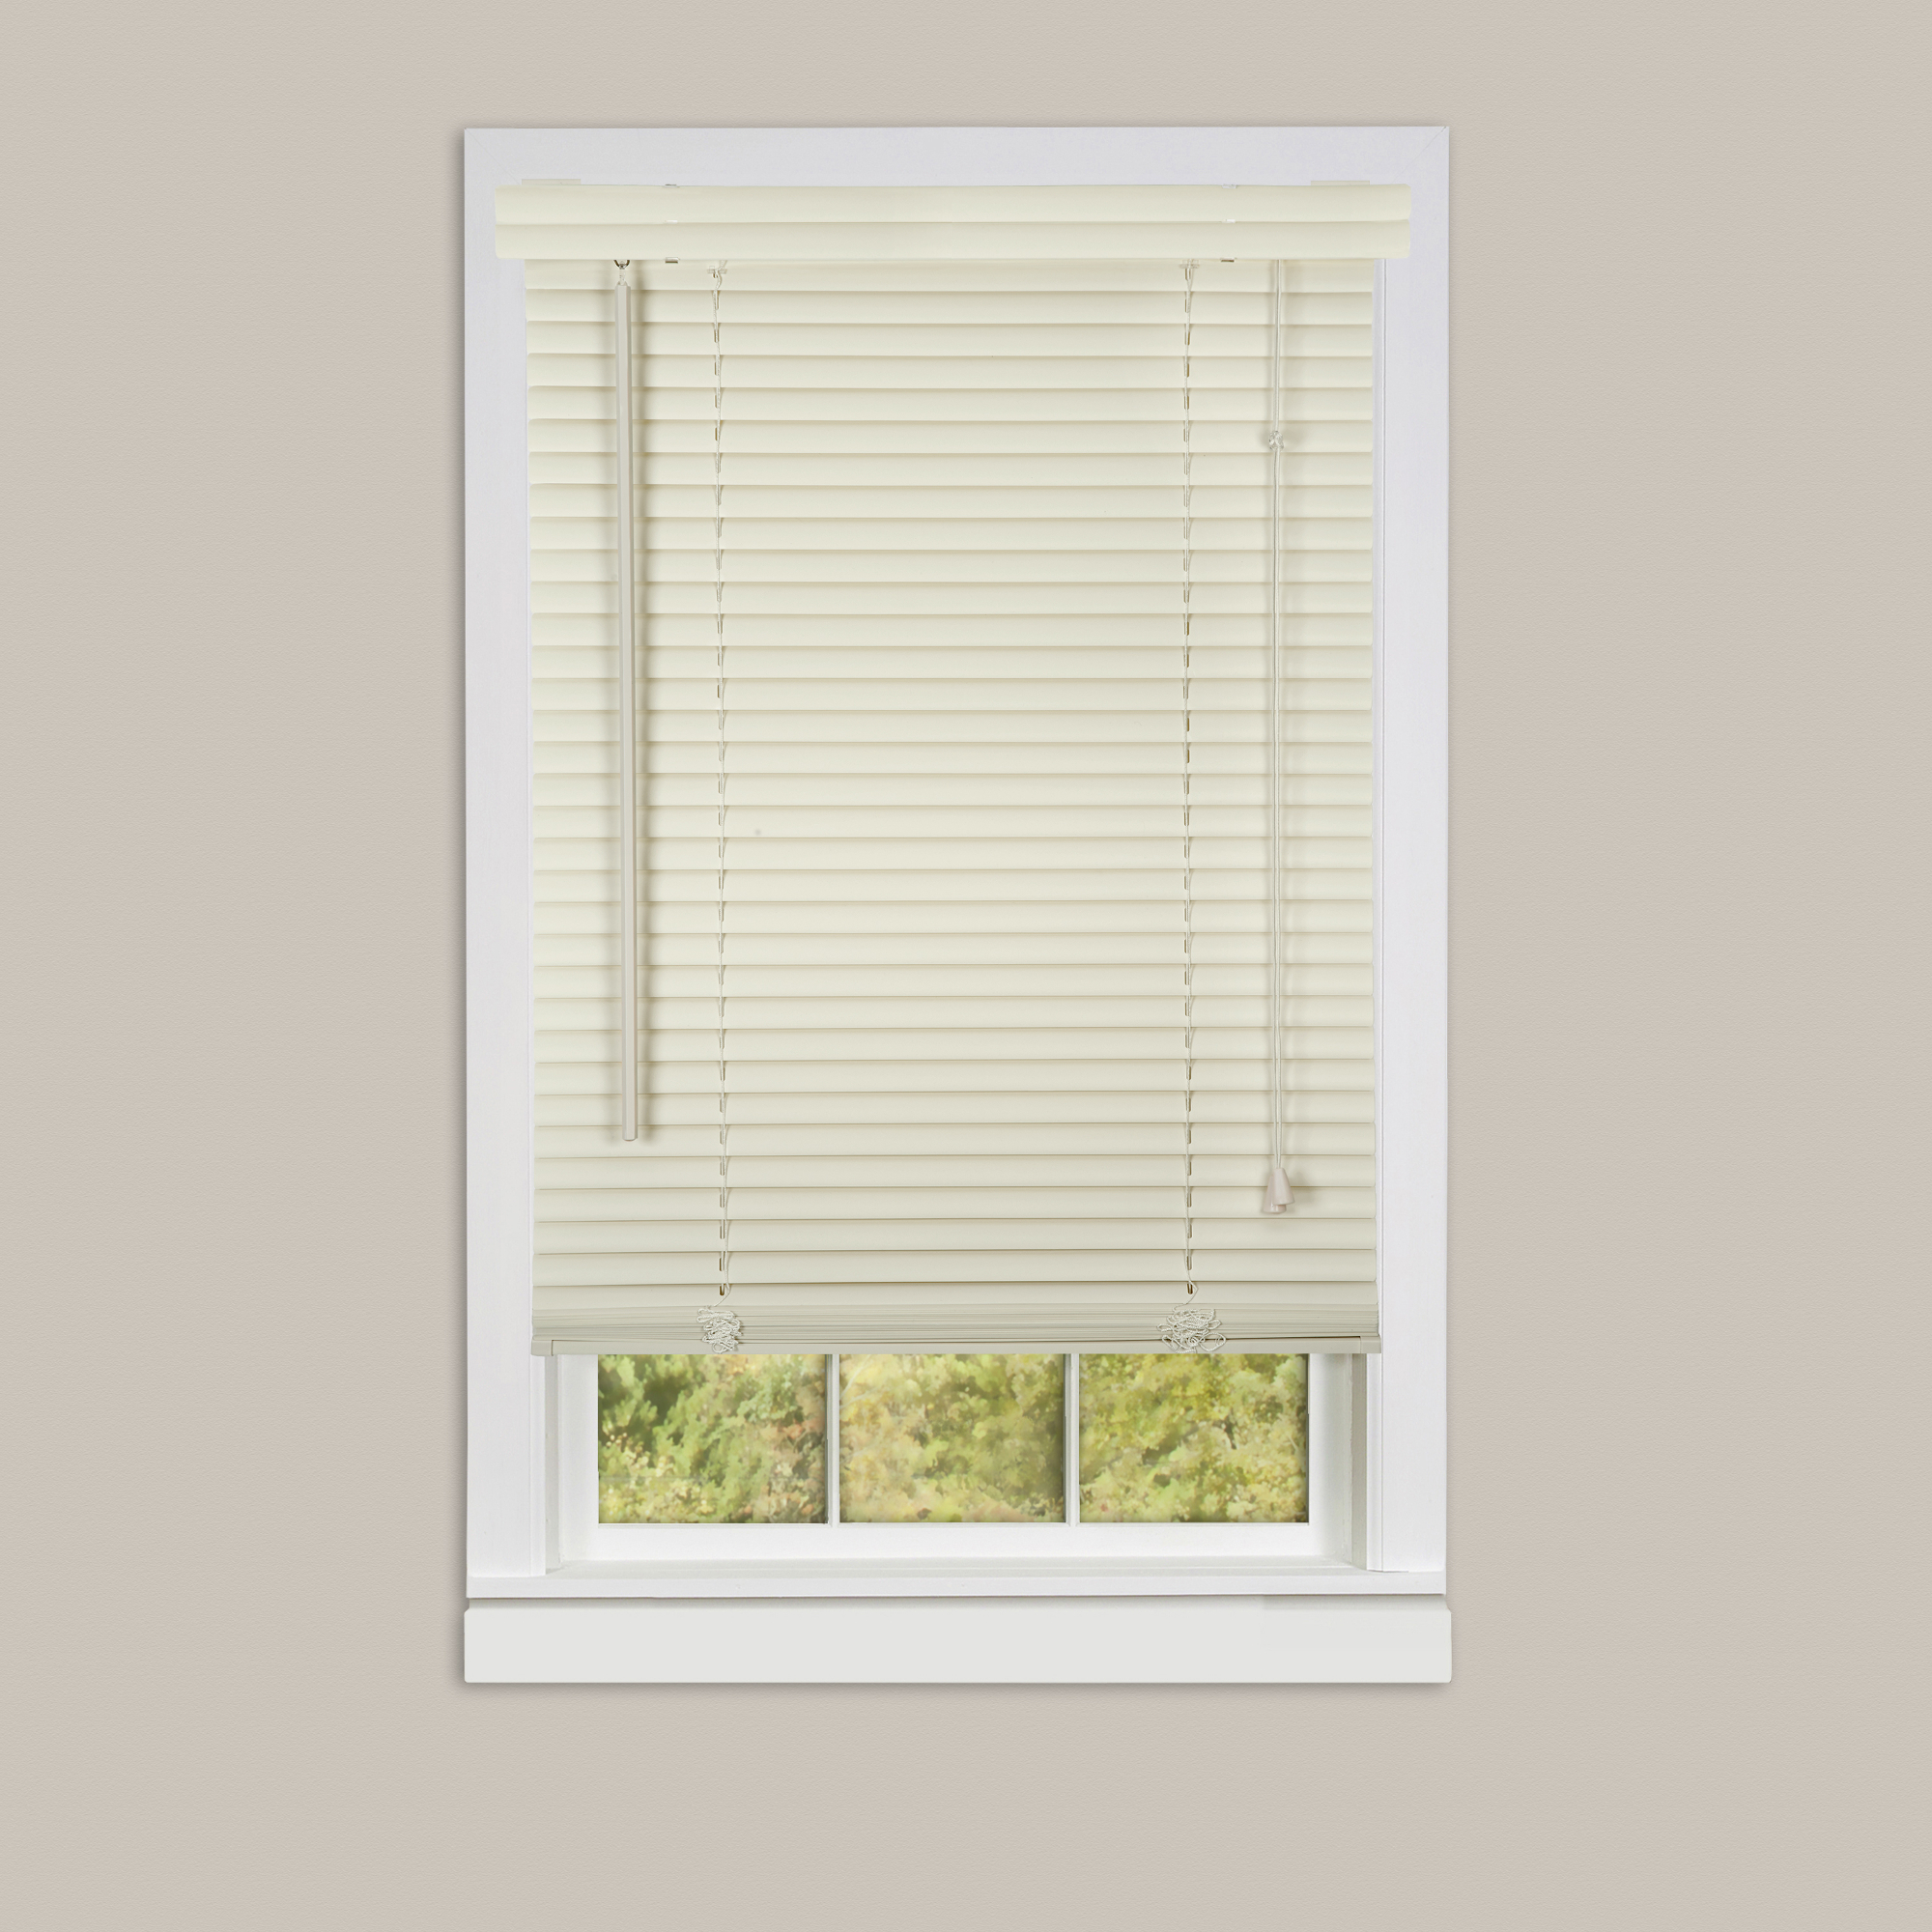 Inexpensive mini blinds 18x42 vinyl alabaster for 18 inch window blinds